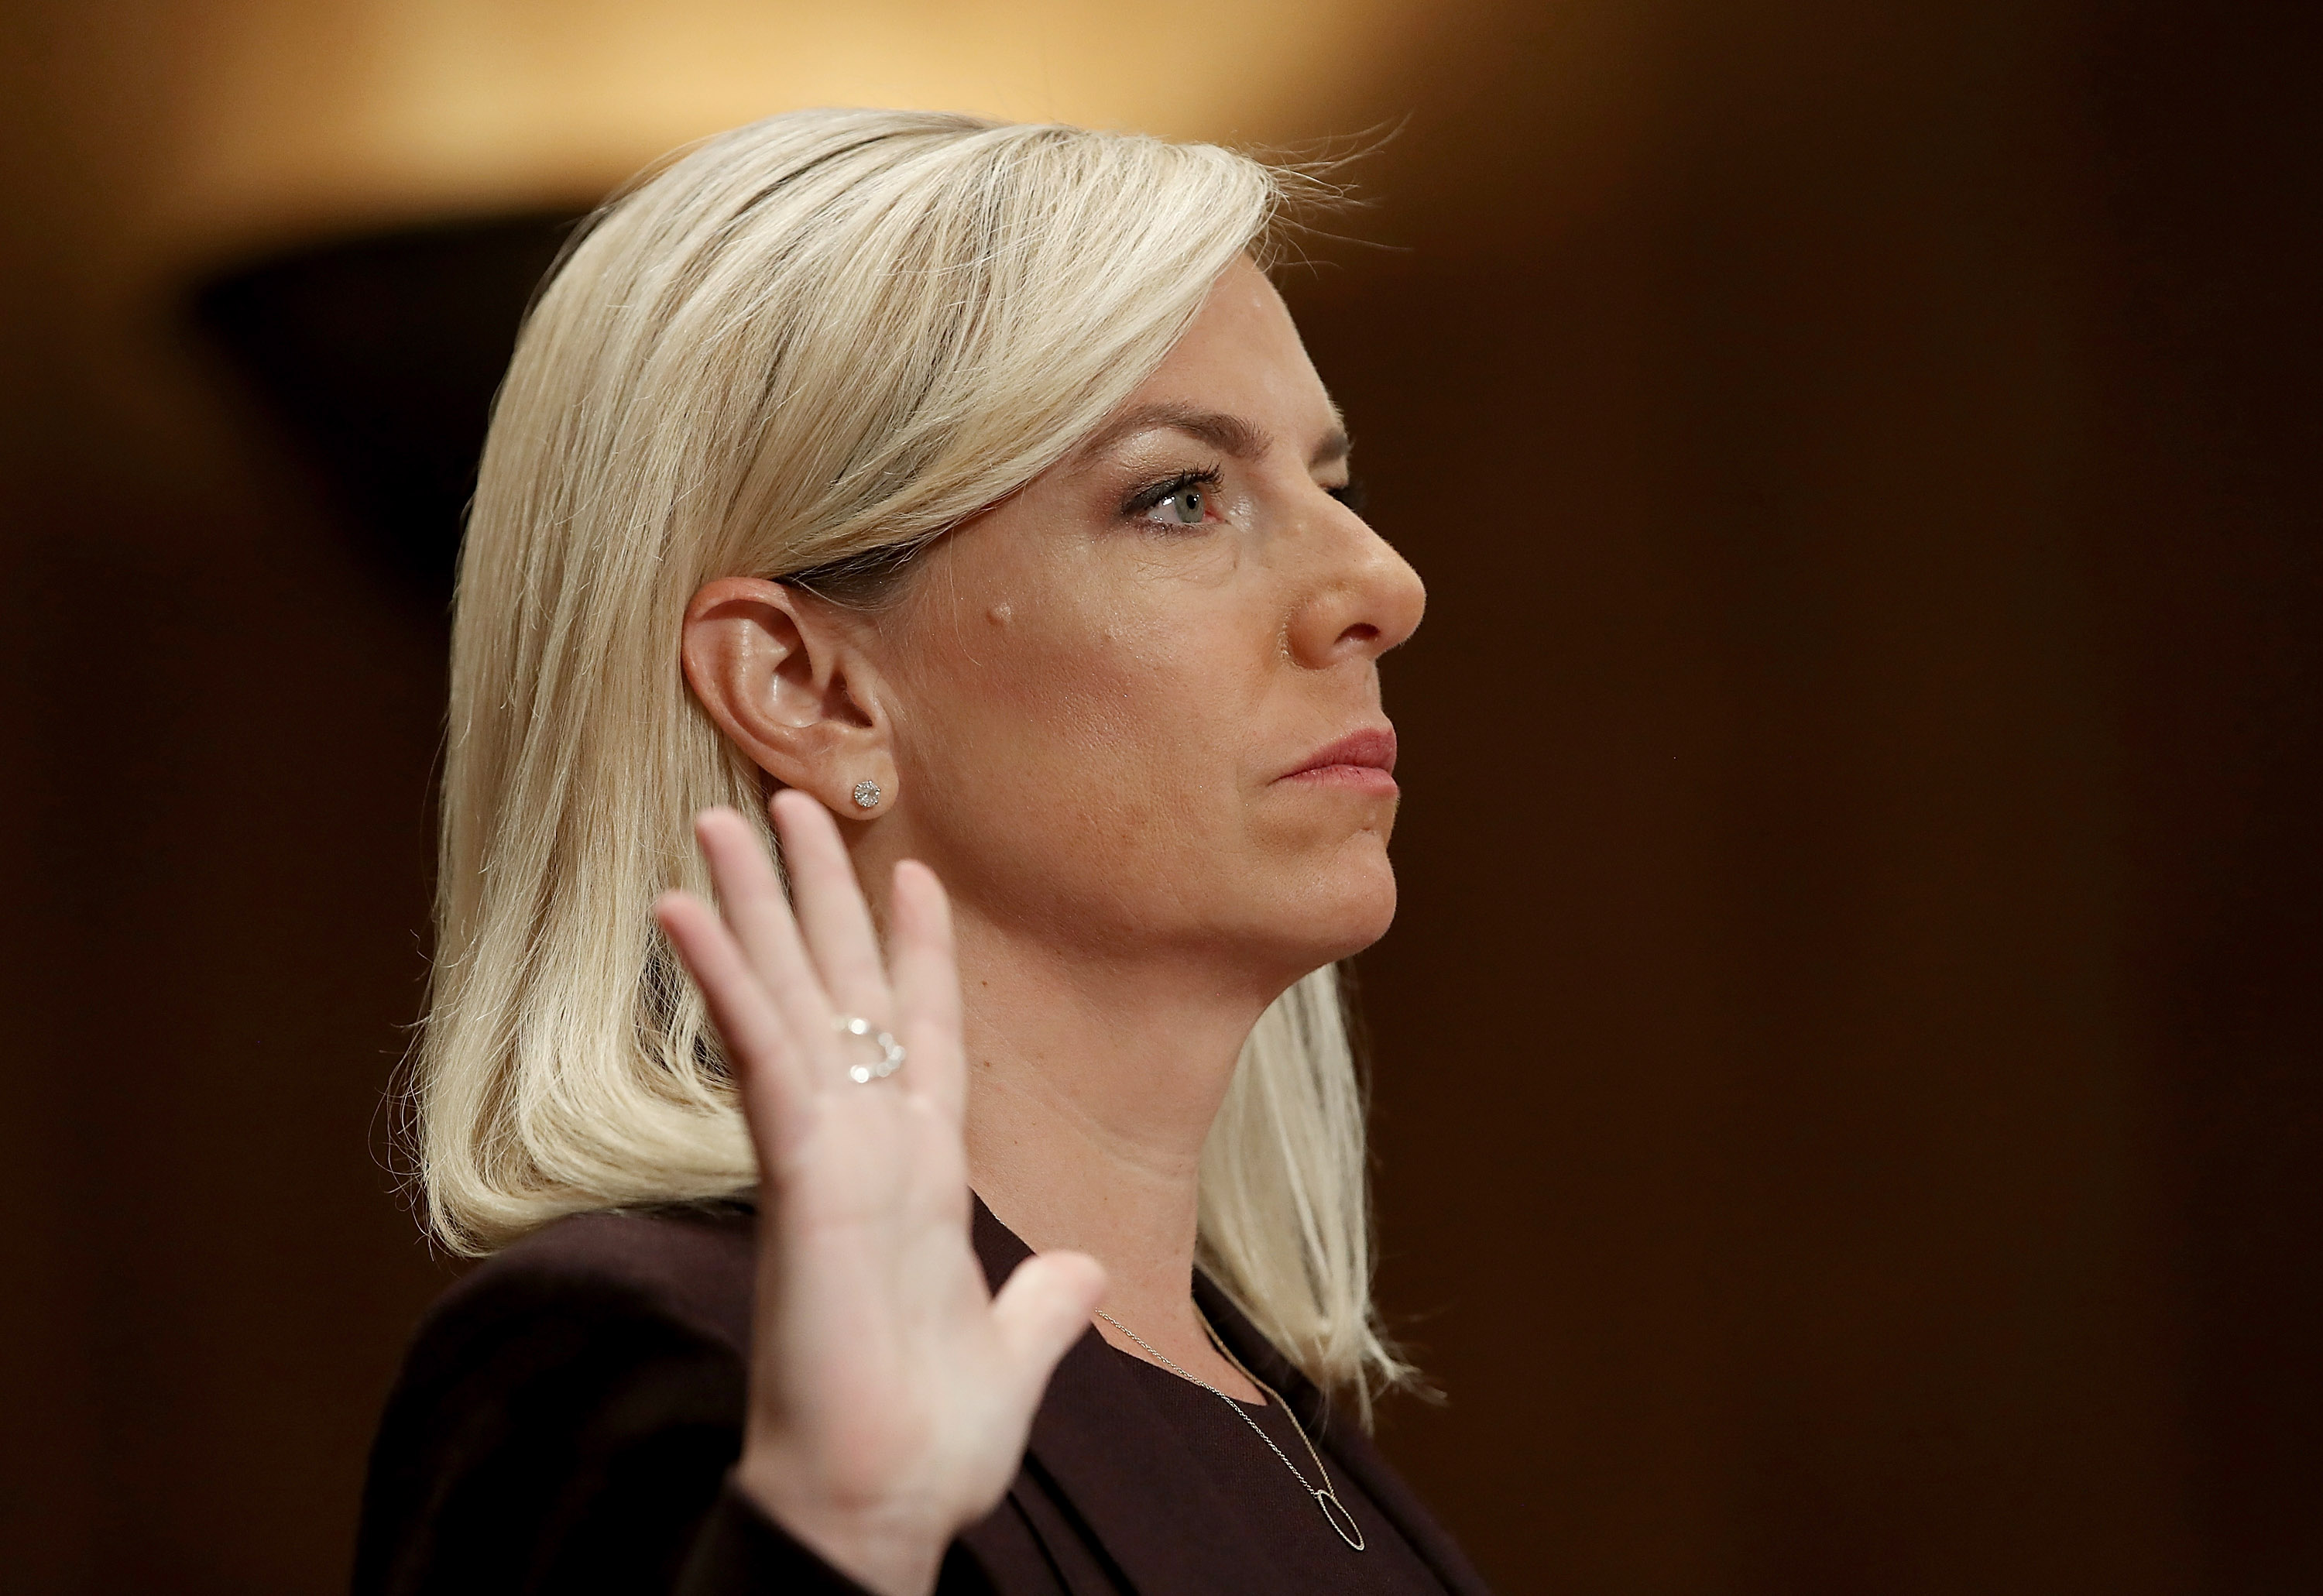 WASHINGTON, DC - NOVEMBER 08:  Kirstjen Nielsen, nominee to be the next Secretary of the Homeland Security Department, is sworn in before the Senate Homeland Security and Governmental Affairs Committee November 8, 2017 in Washington, DC. Nielsen, if confirmed, will fill the cabinet role formerly held by Gen. John Kelly, current White House Chief of Staff. (Photo by Win McNamee/Getty Images)